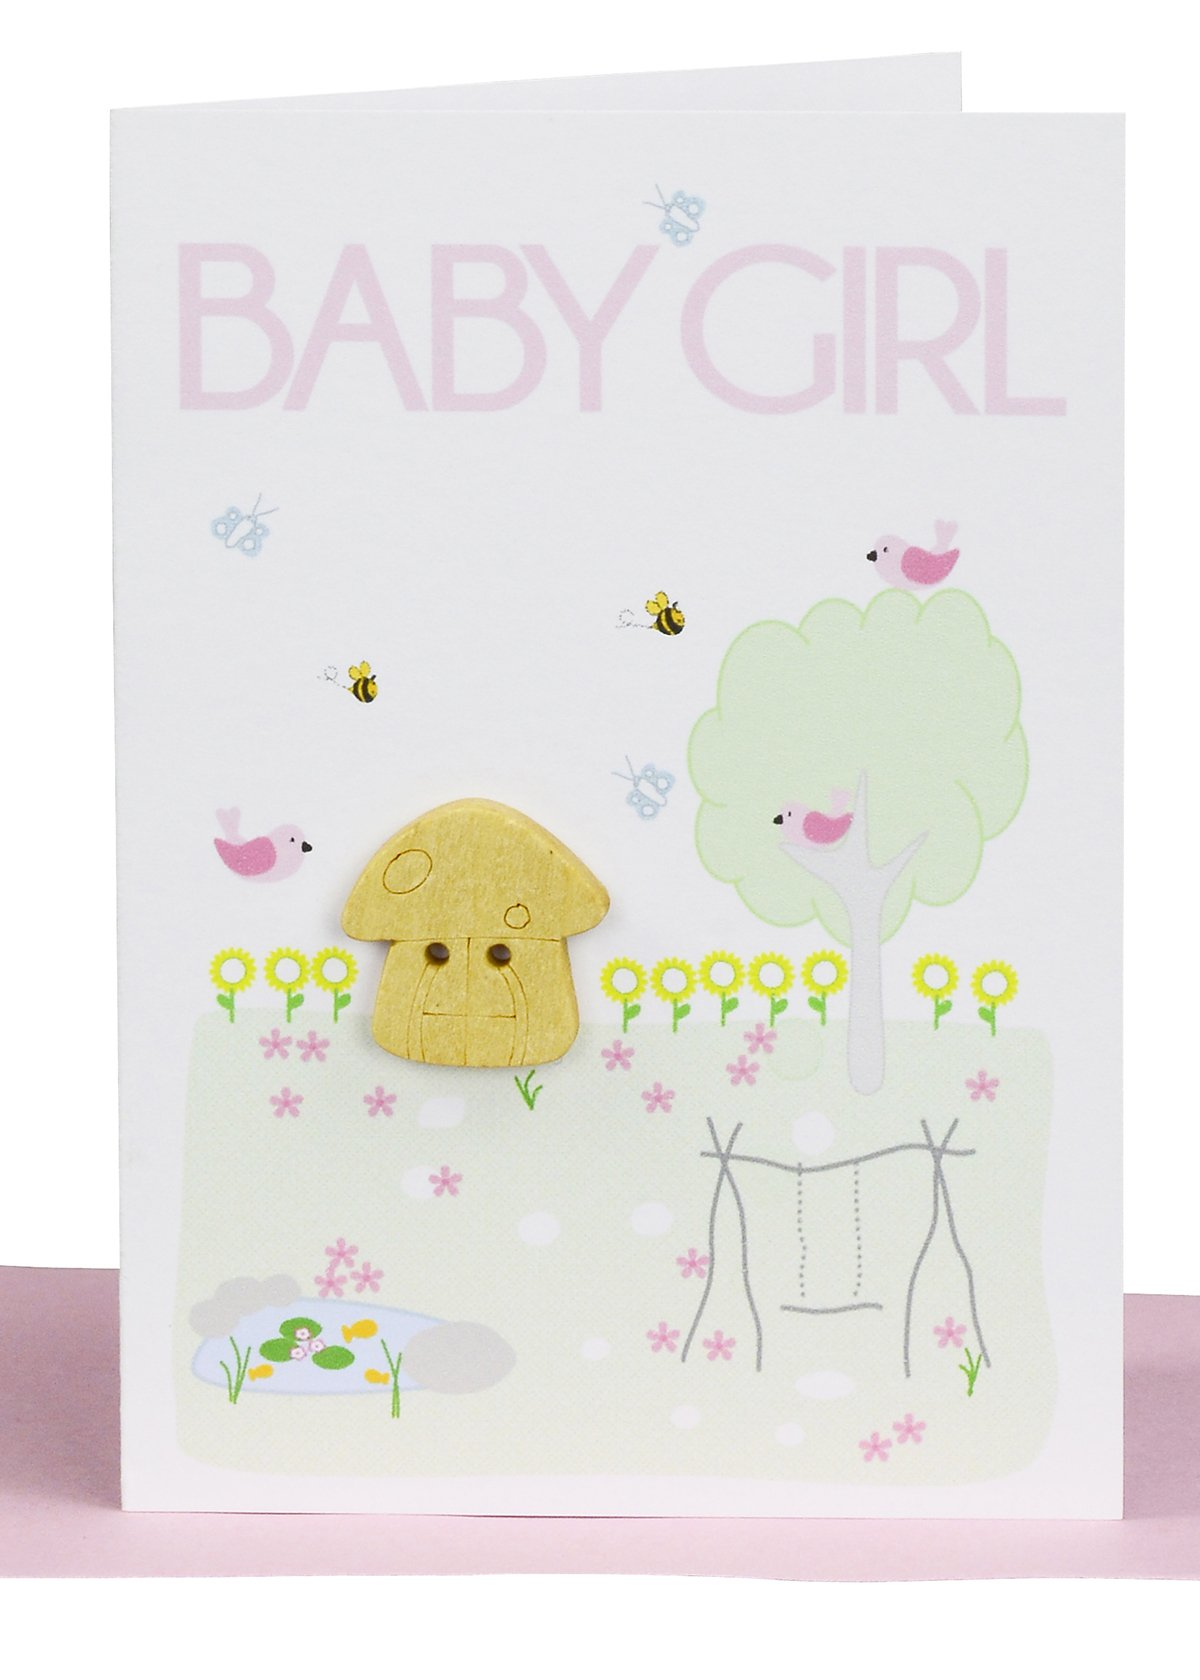 Baby girl gift card fairy garden lils cards handmade wholesale handmade baby girl greeting card embellished with a small wooden fairy mushroom in a surrounding garden kristyandbryce Images